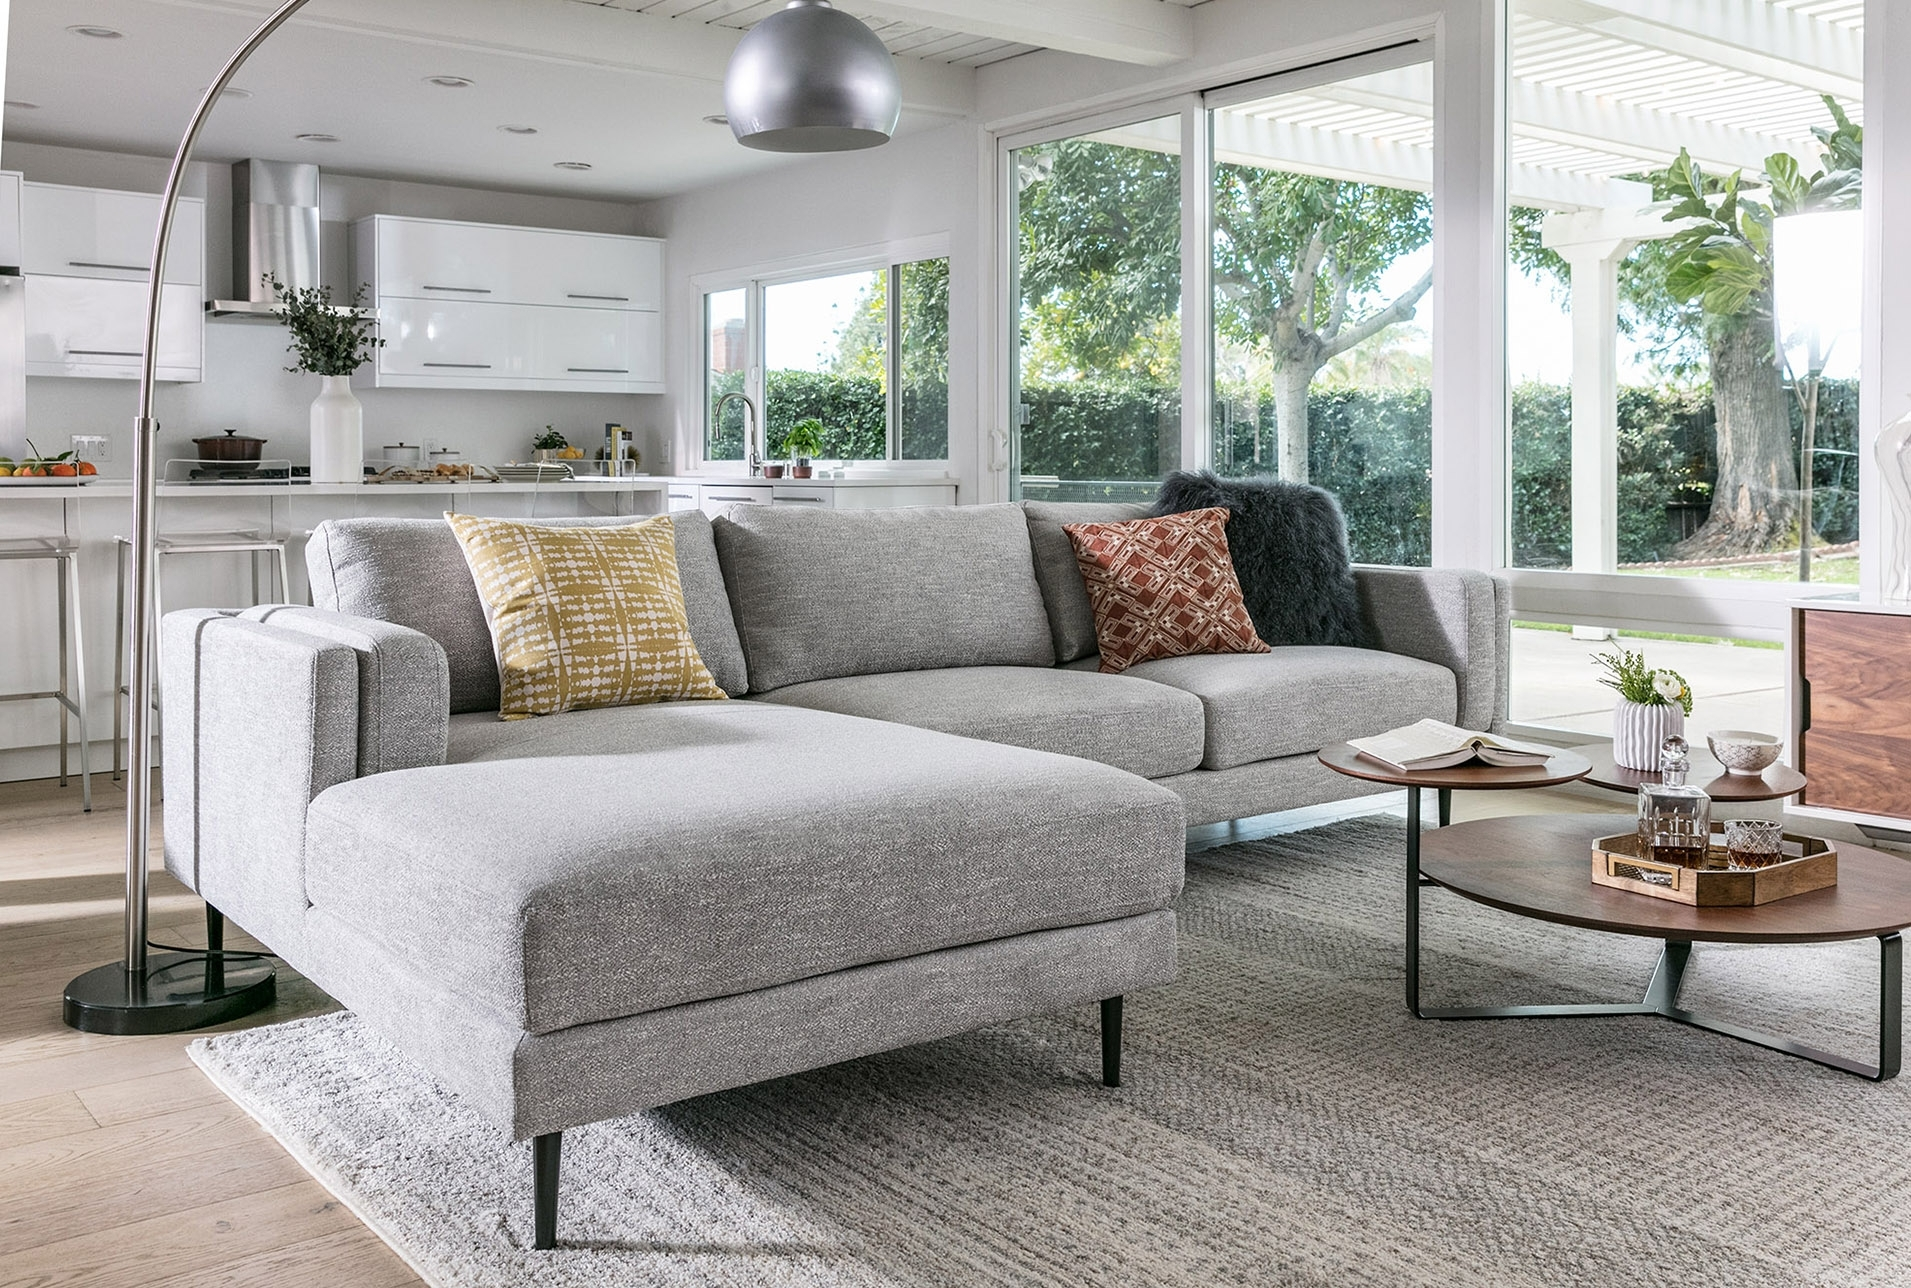 Aquarius Light Grey 2 Piece Sectional W/laf Chaise | Products In Aquarius Light Grey 2 Piece Sectionals With Laf Chaise (Image 6 of 25)